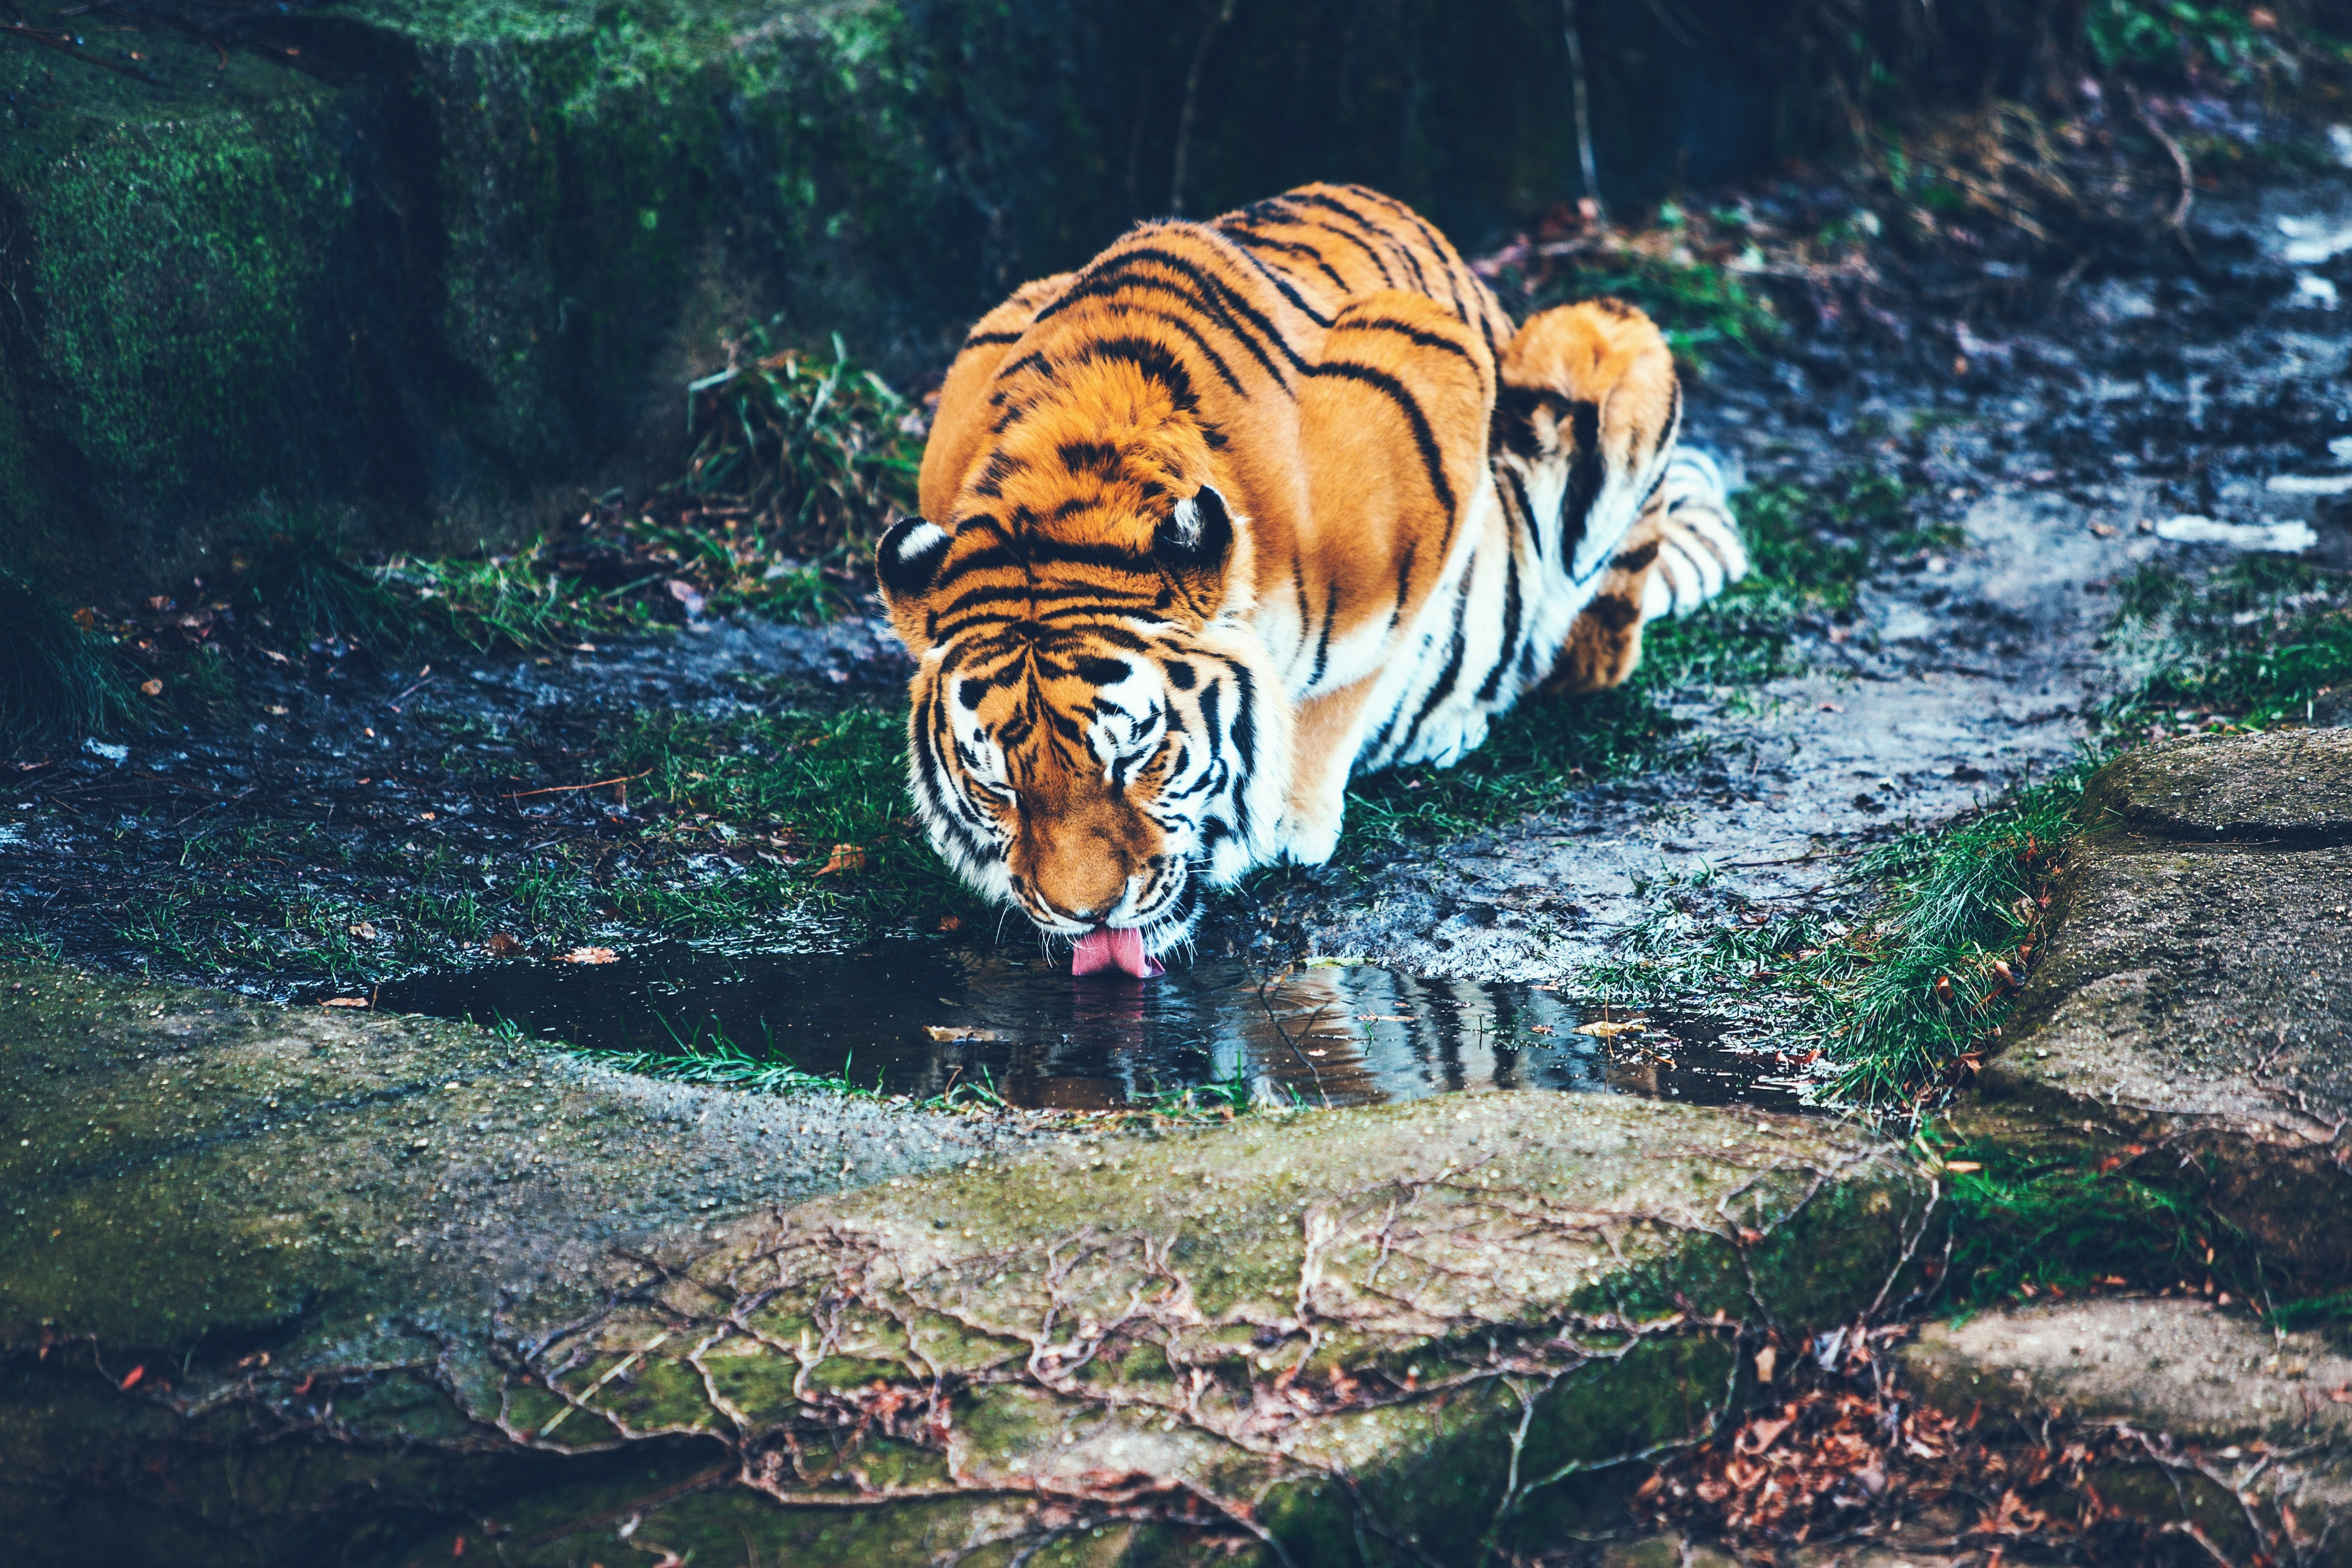 A tiger drinking from a puddle